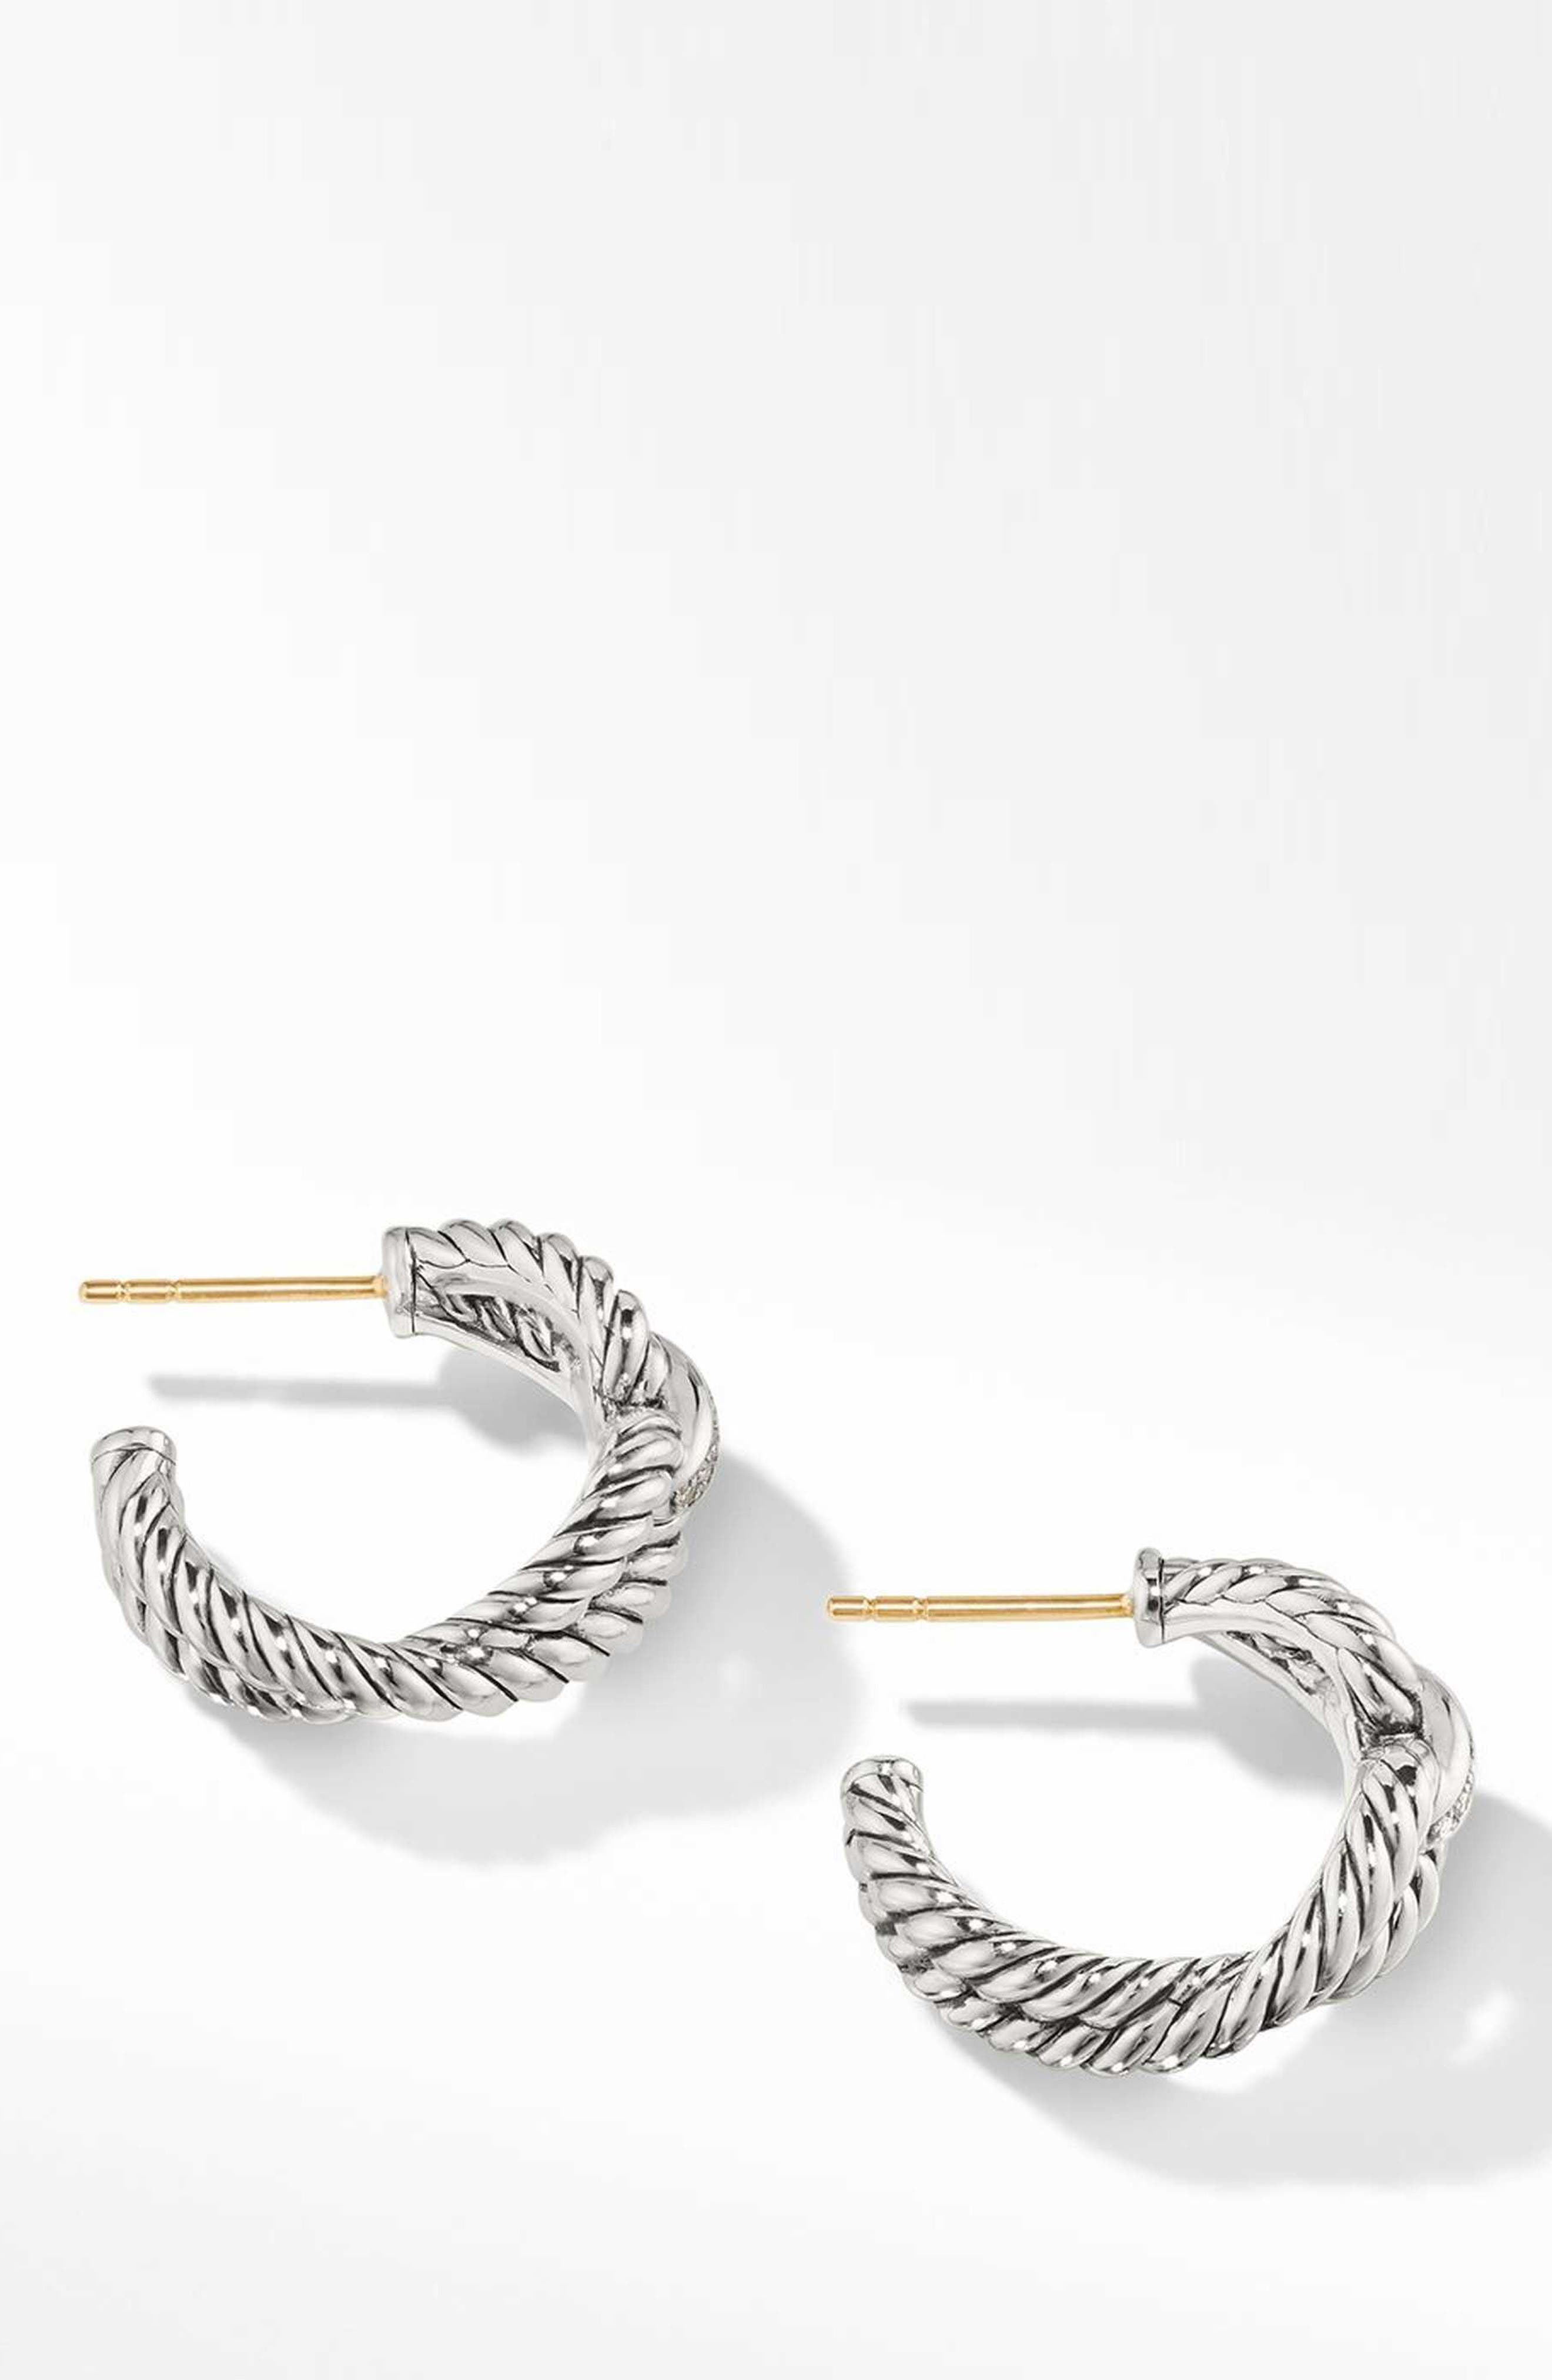 Cable Loop Hoop Earrings with Diamonds,                             Main thumbnail 1, color,                             STERLING SILVER/ DIAMOND